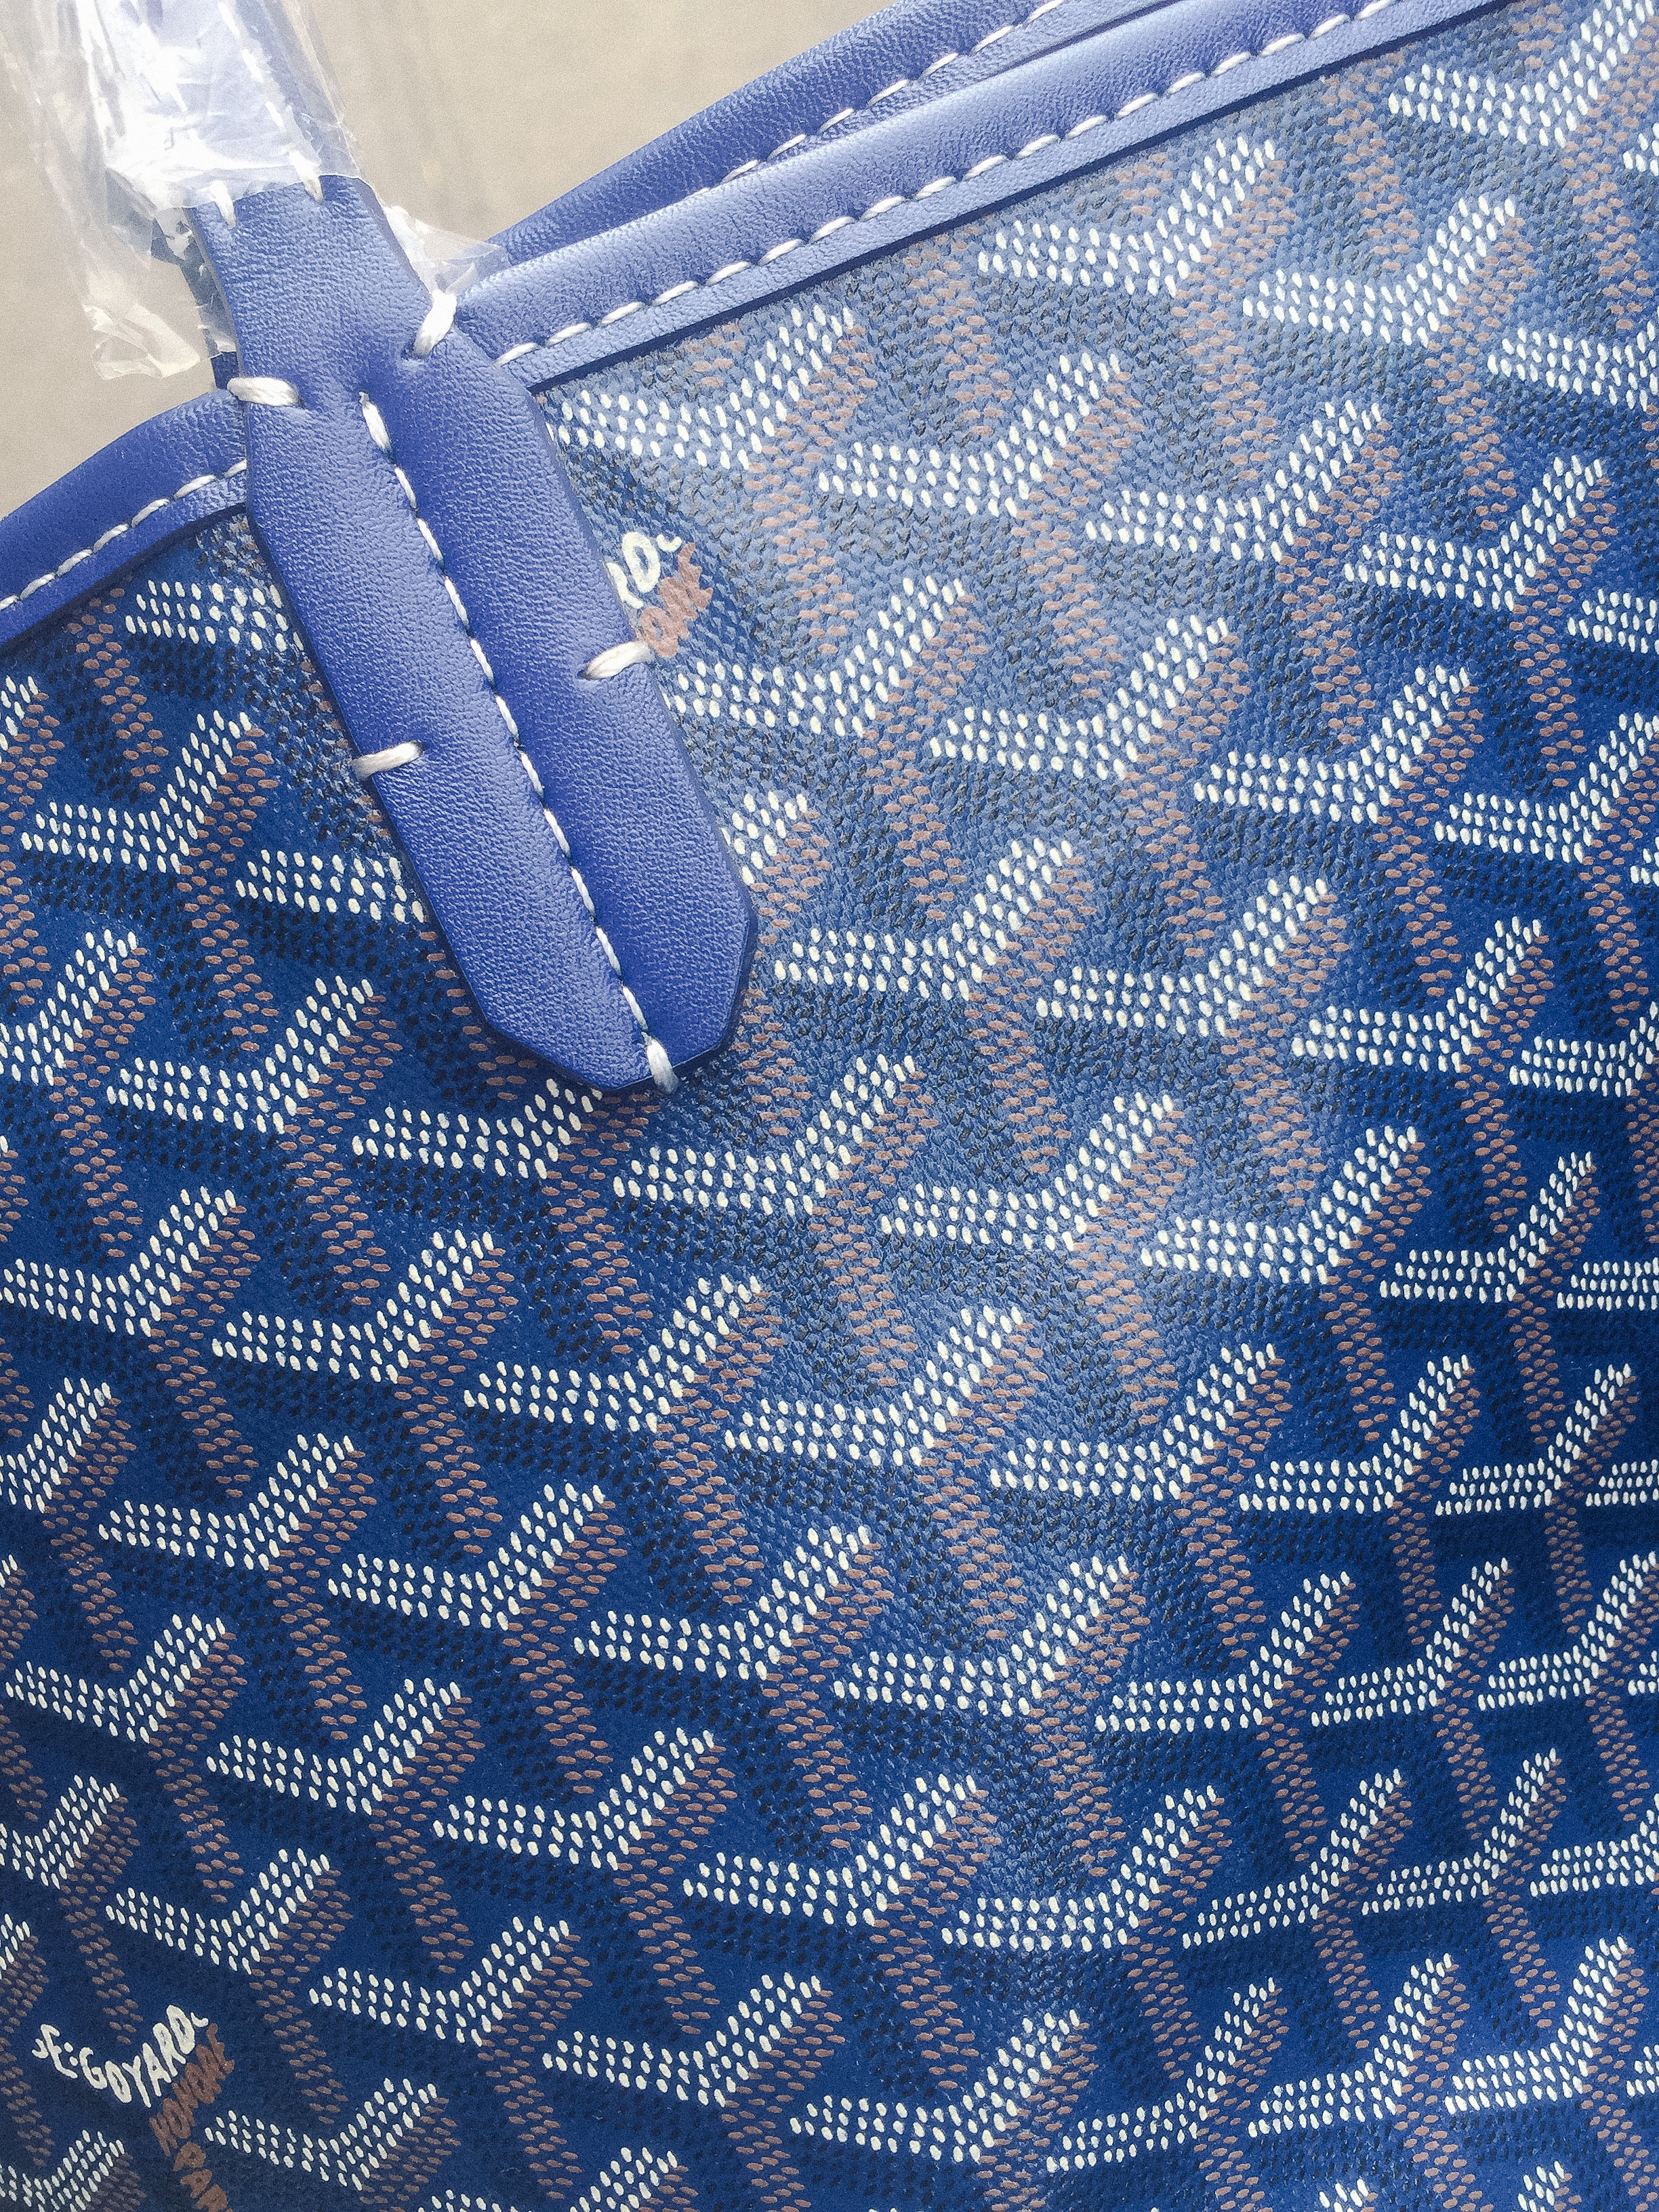 Aha! Indication #1 this is a fake Goyard bag: logo placement by the stitching. Real Goyard St. Louis bags do have white stiching on them. In fact, do you see where the logo gets cut off at the top left hand corner? Goyard bag patterns don't cut off the logo in that way.